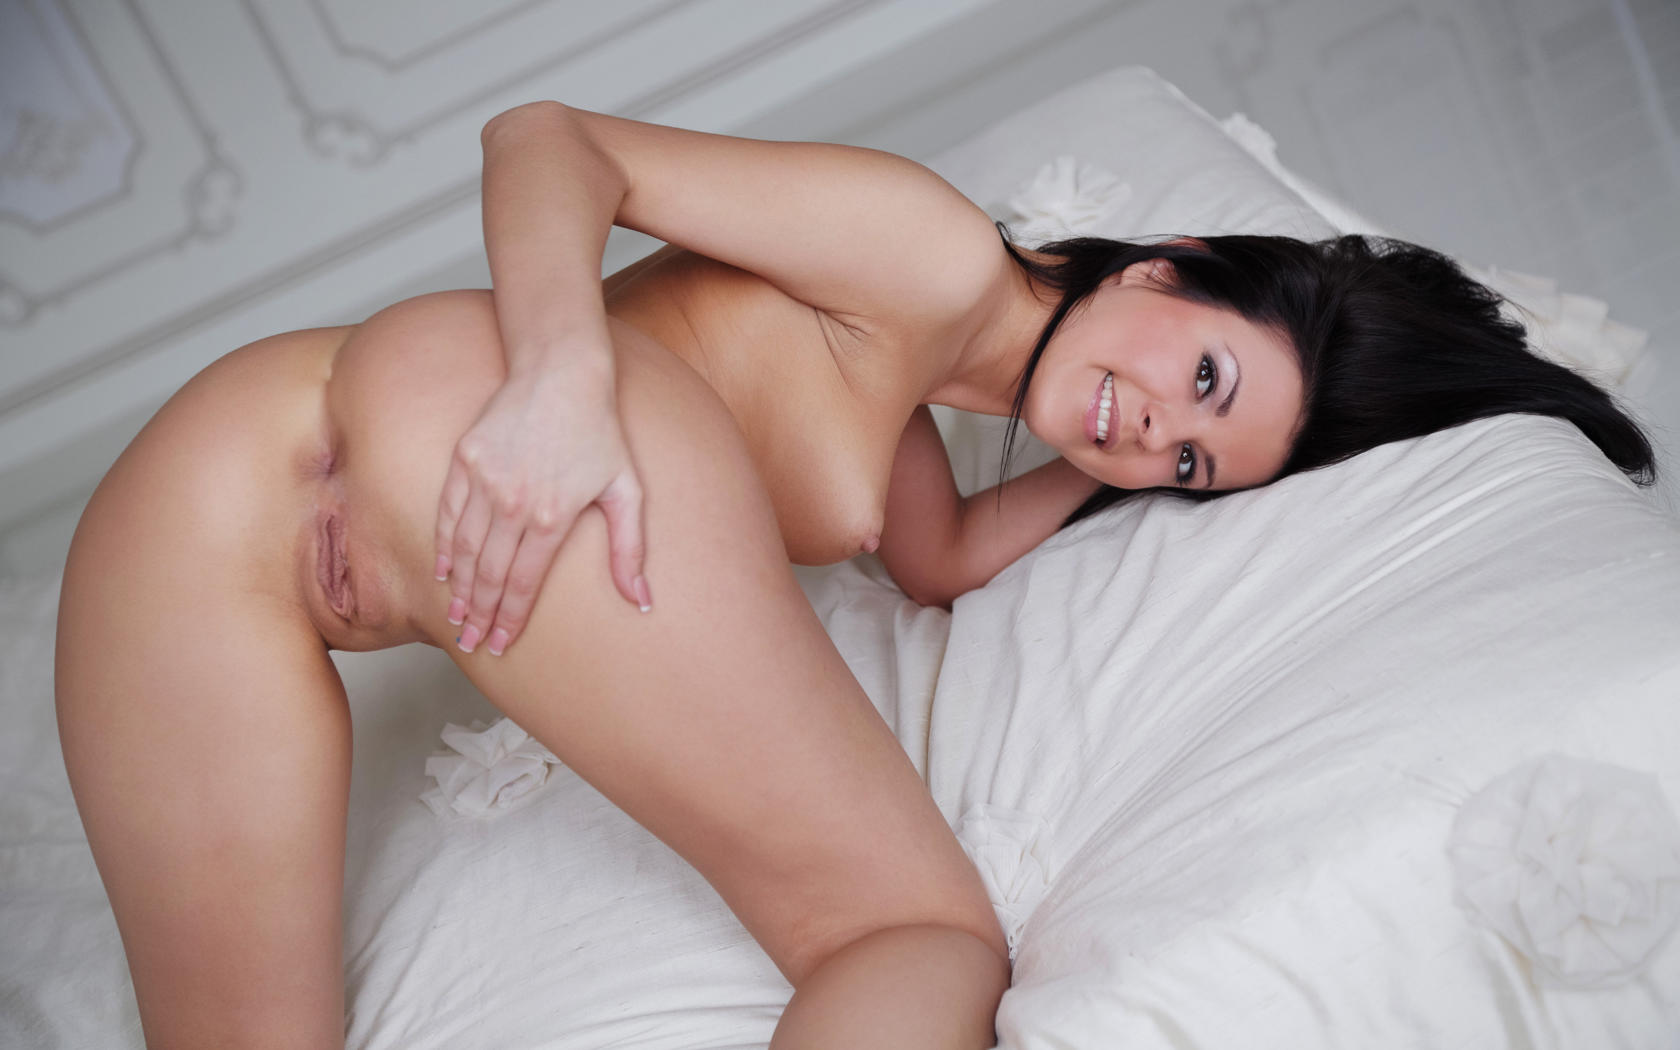 Natural tits shaved pussy rough sex 5